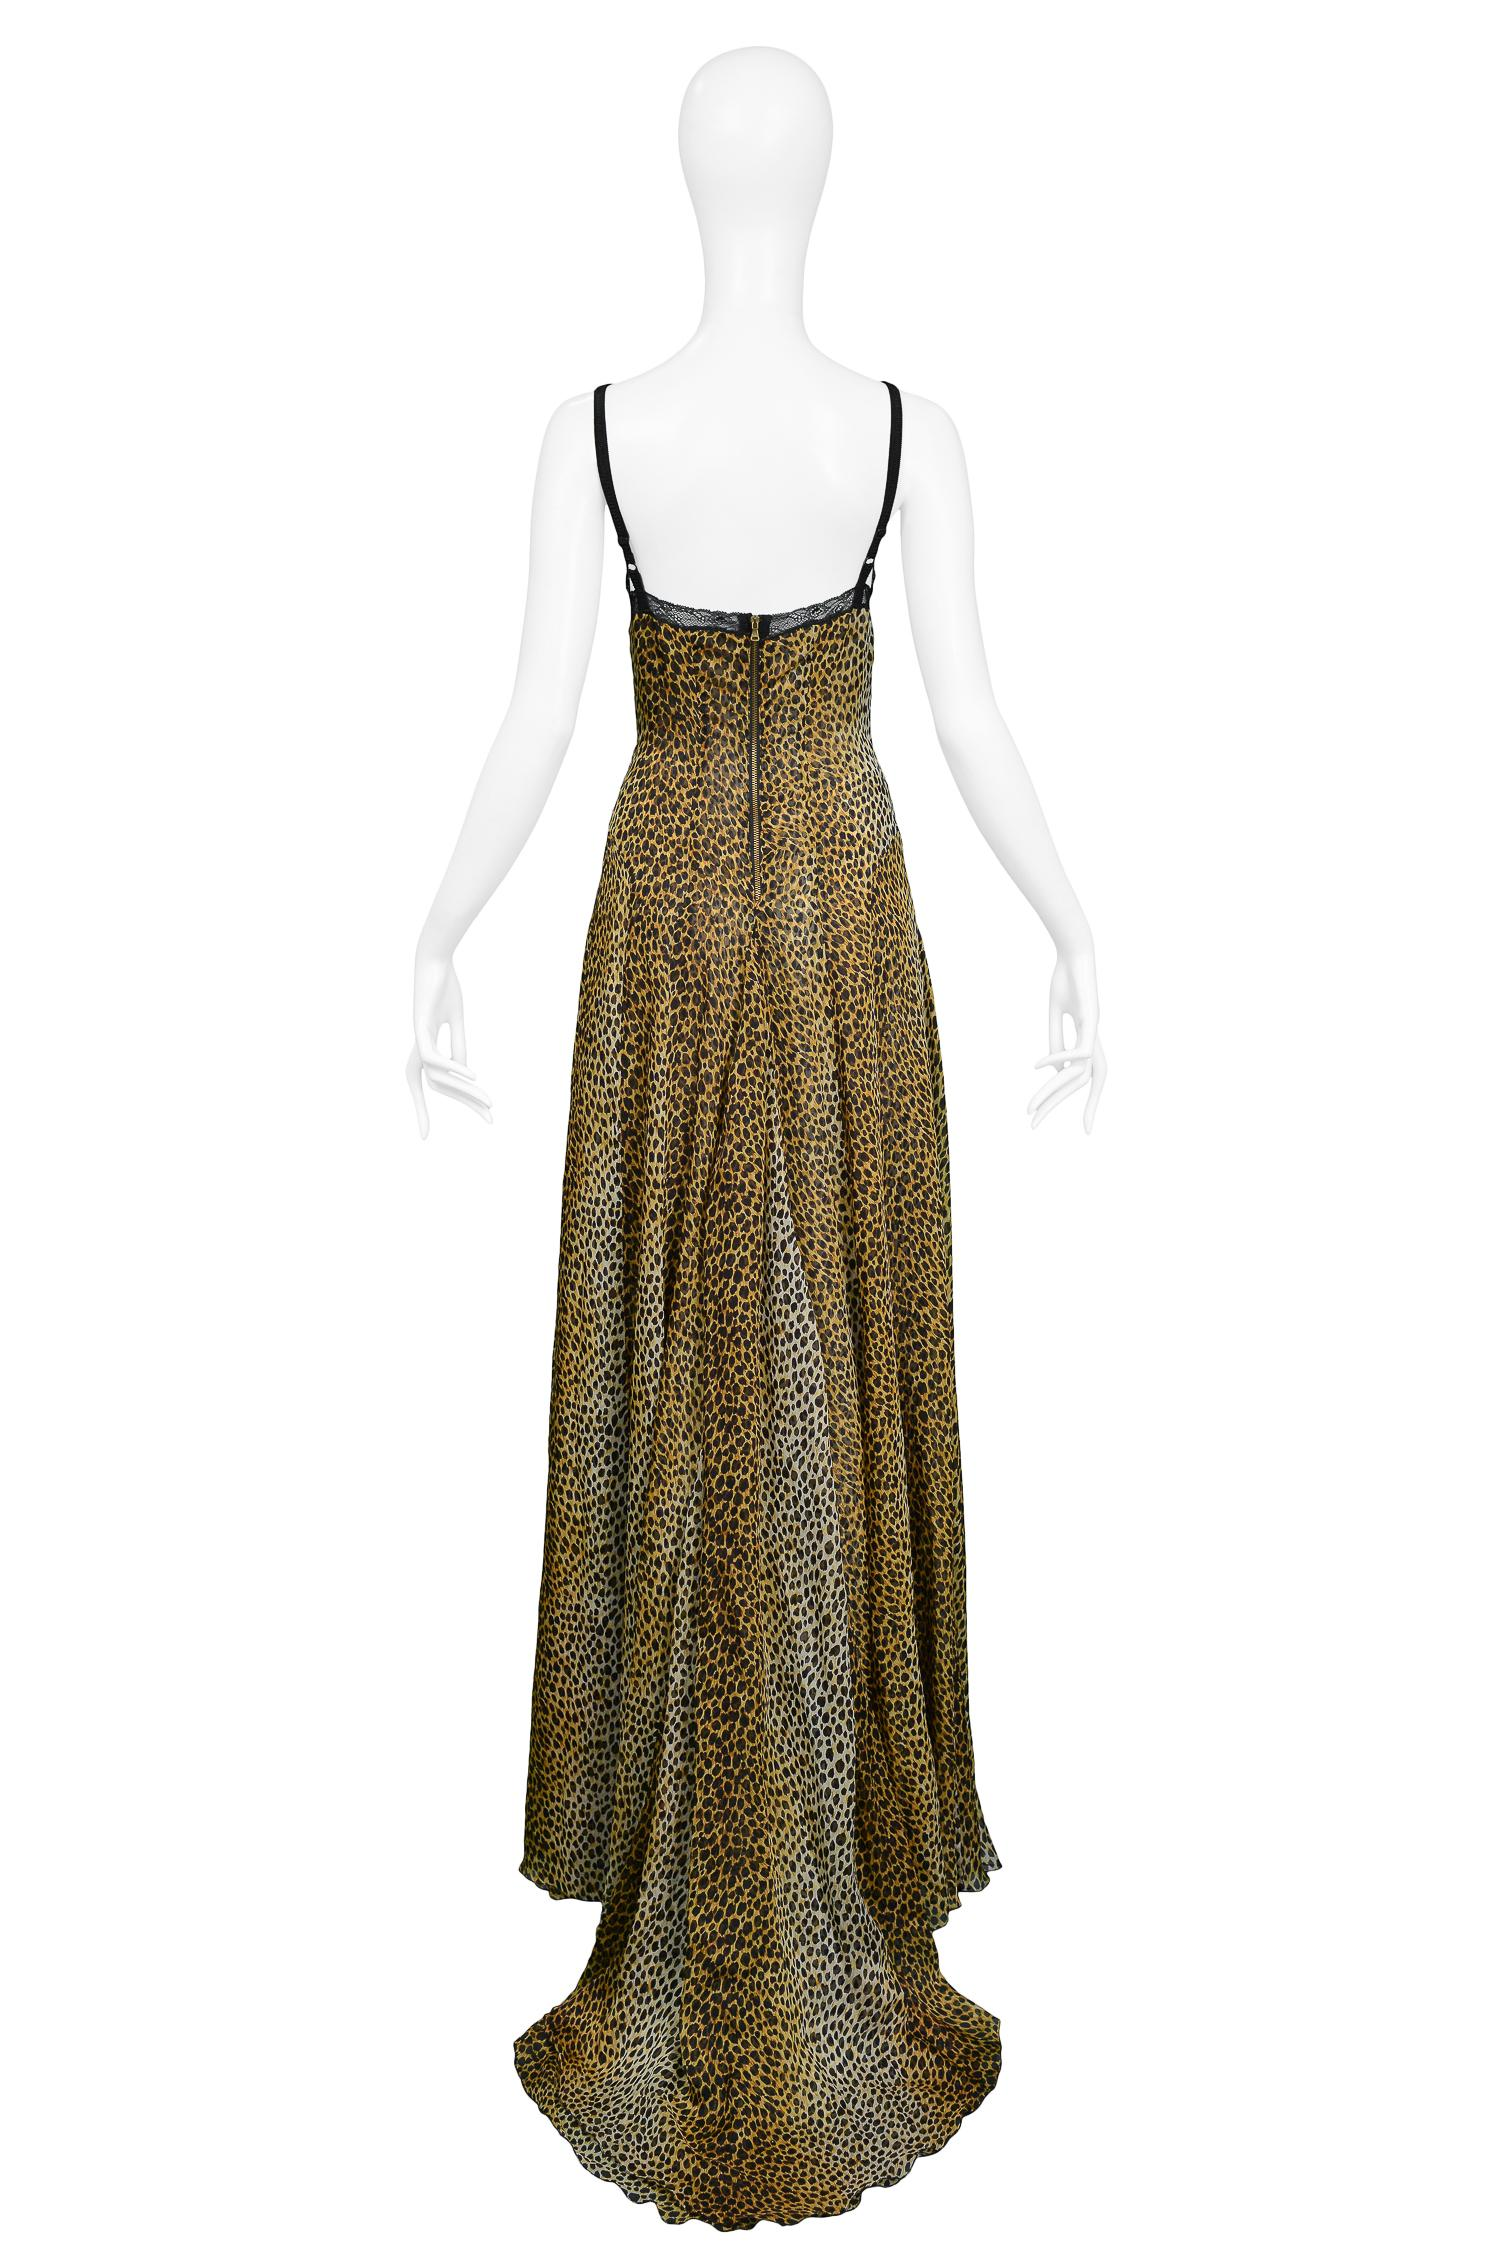 D&G by Dolce and Gabbana Leopard Lace Slip Gown For Sale at 1stdibs